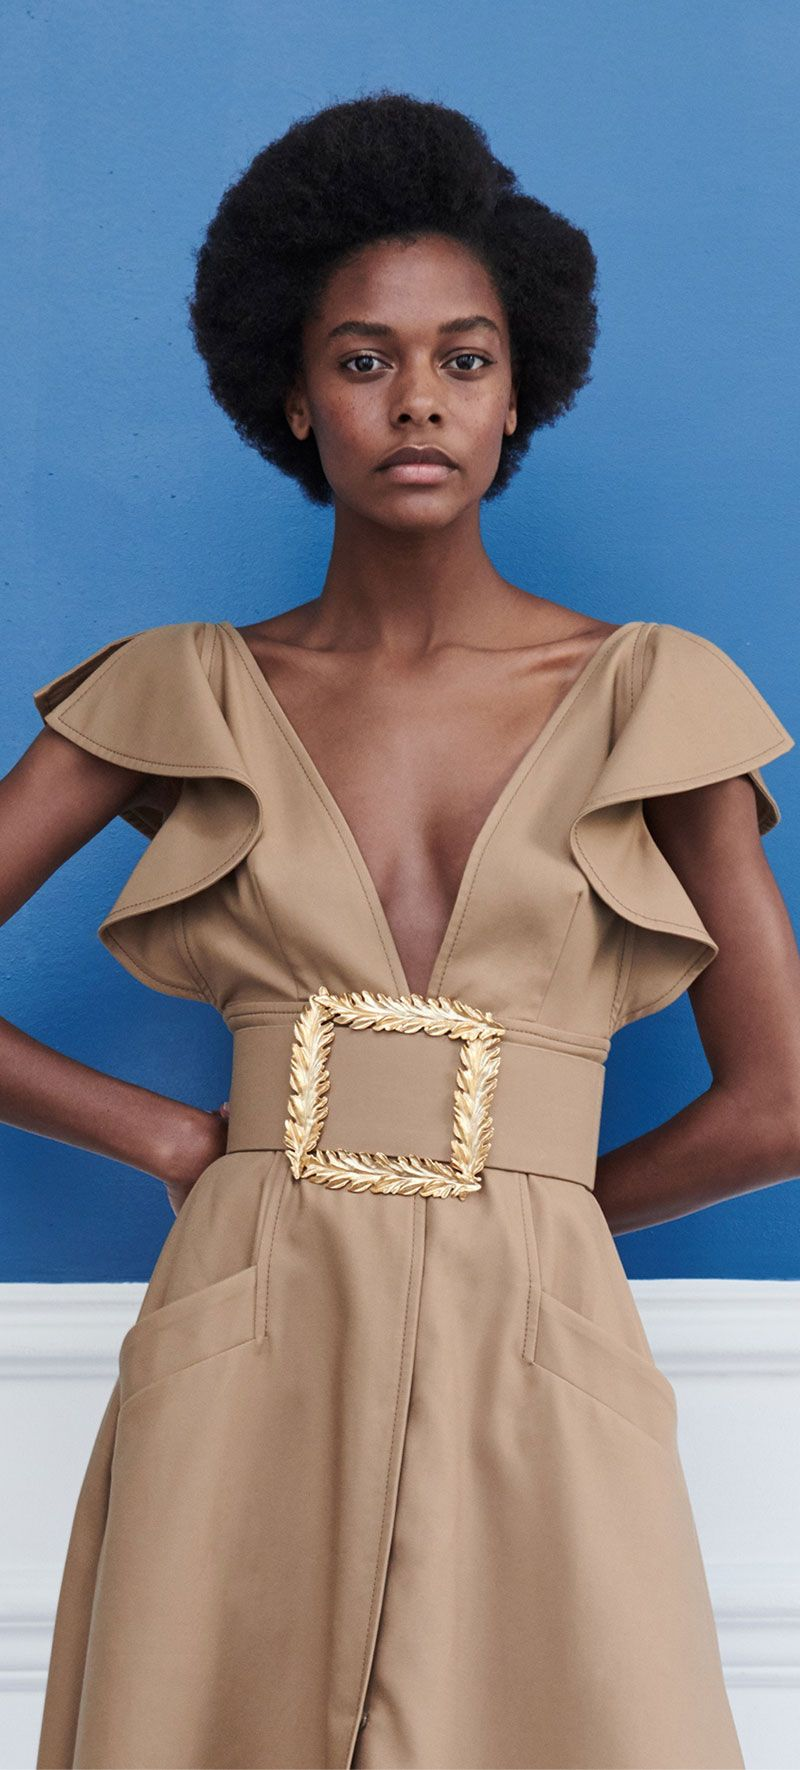 Oscar de la Renta Resort 2019 - Fashion designer , 2019 fashion, womenwear 2019 #fashion